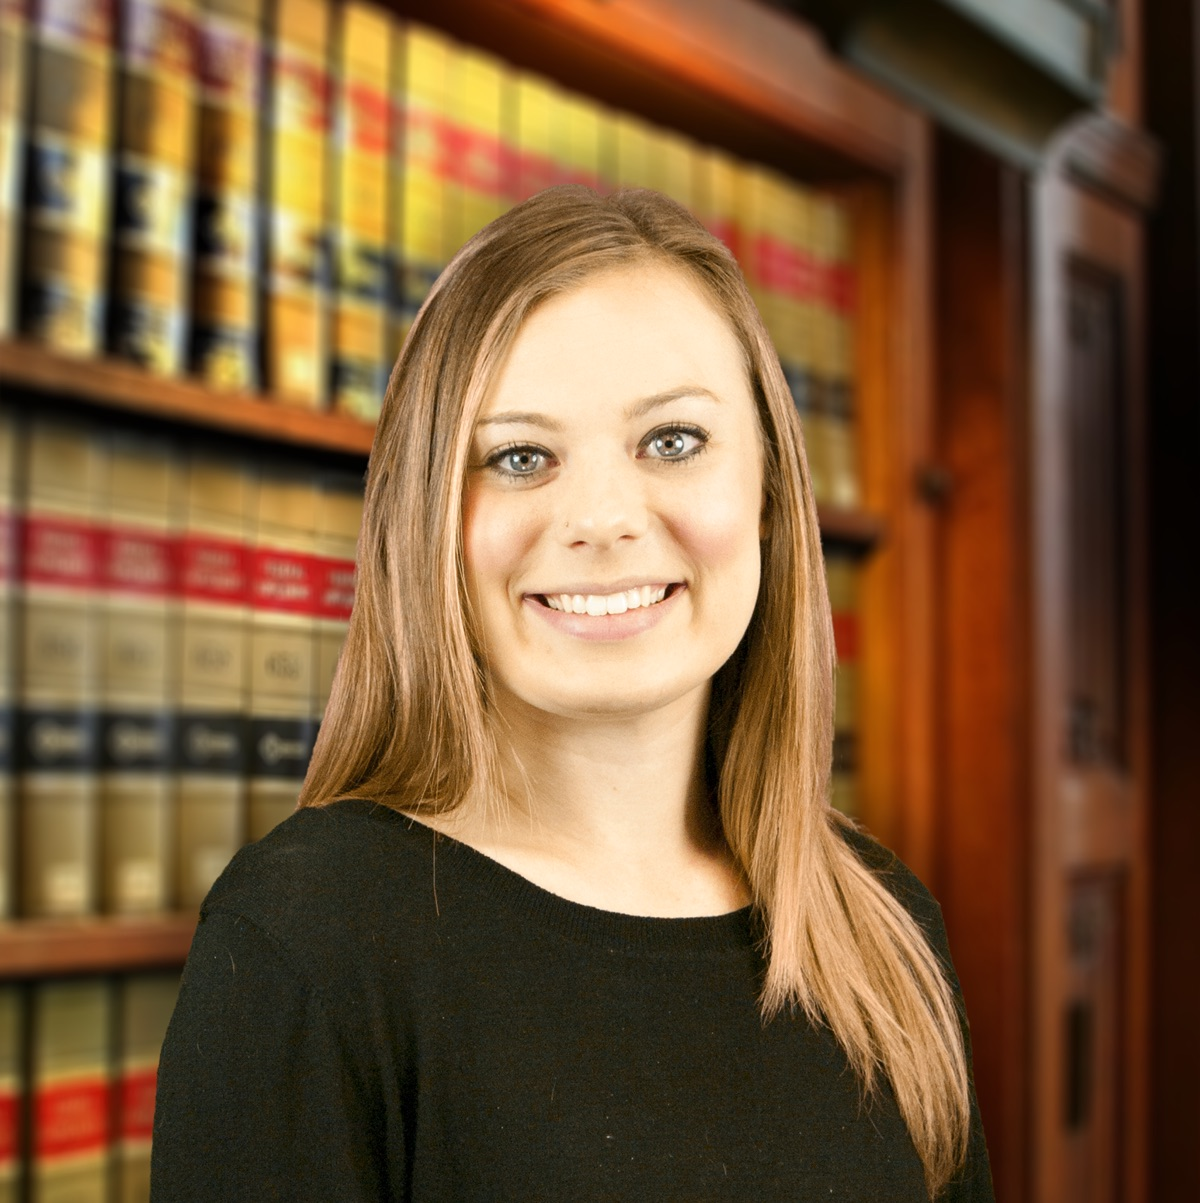 St Cloud Attorneys Staff at Jeddeloh Snyder PA - Brianna Philippi